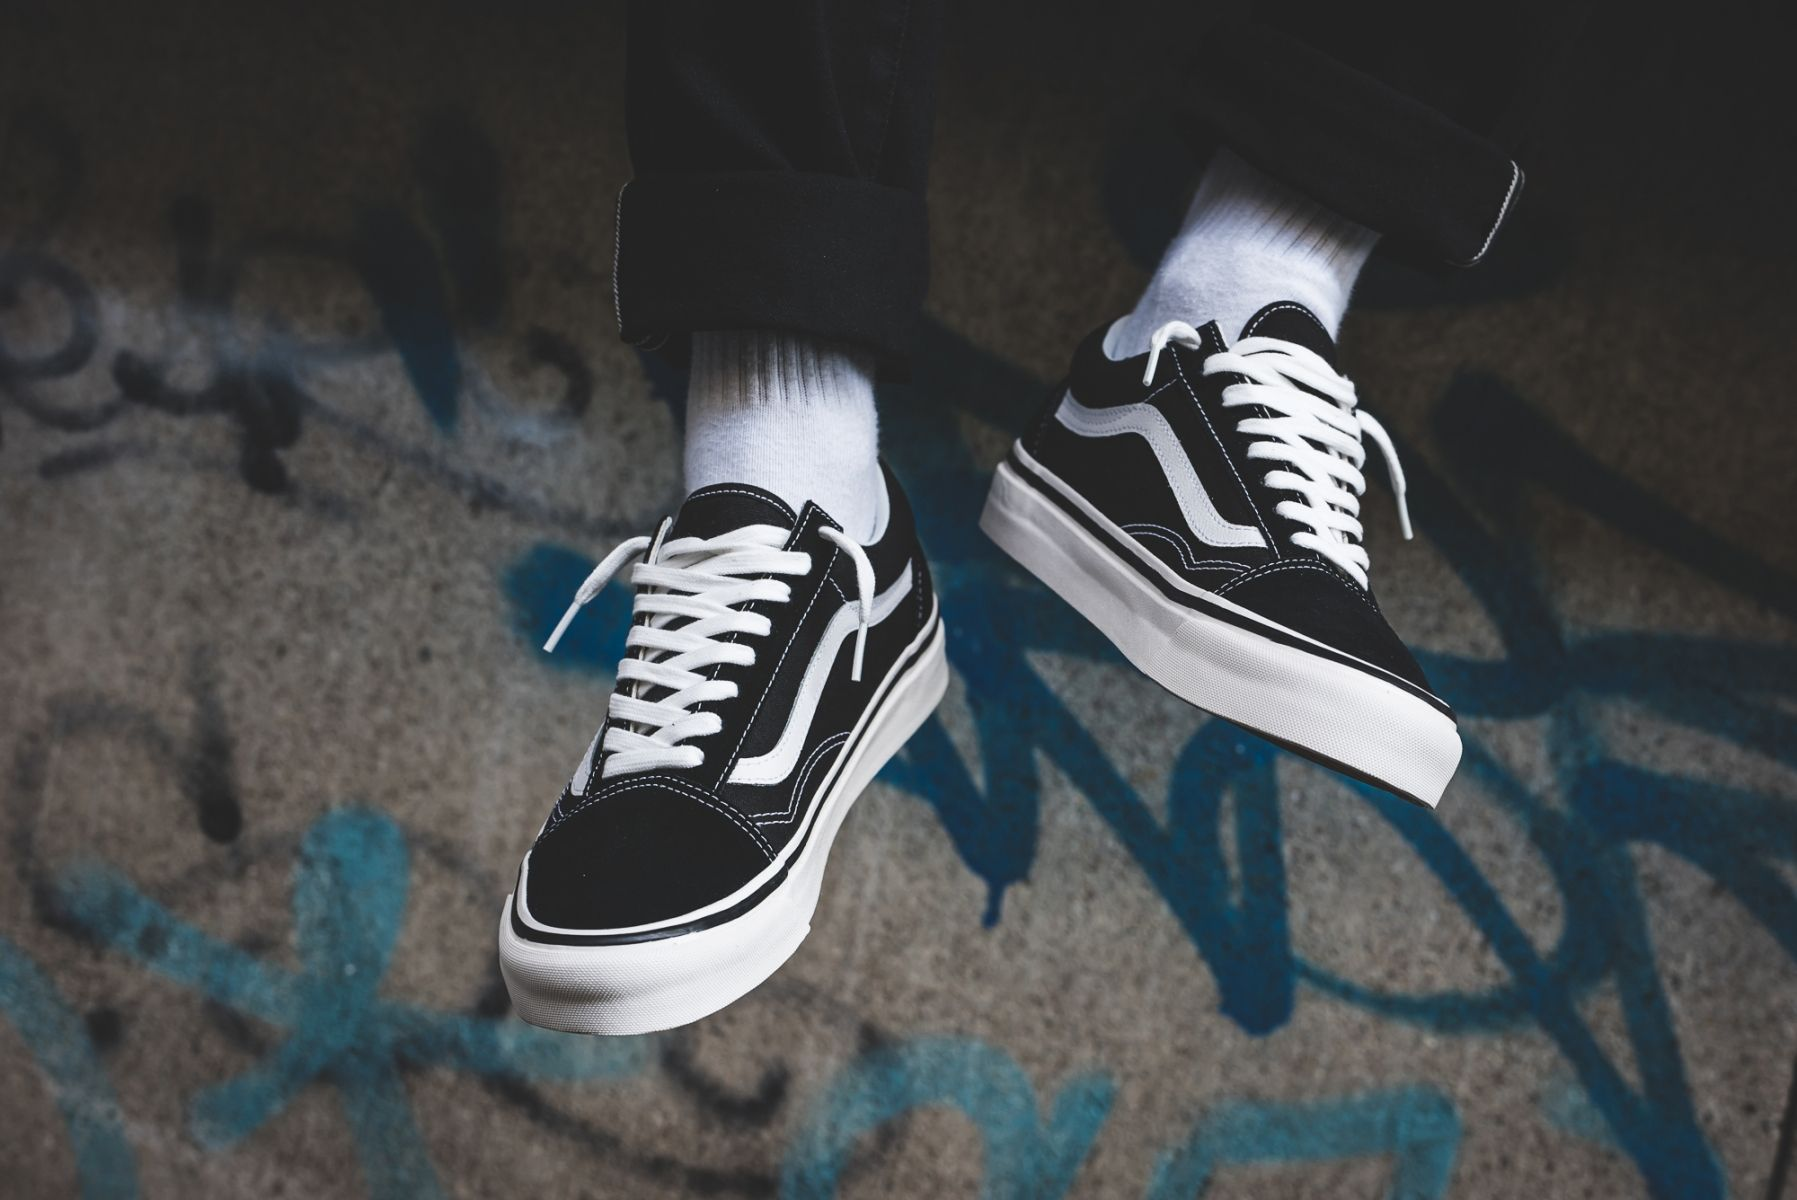 Vans Old Skool 36 DX (schwarz weiß) | Vans old skool, Vans